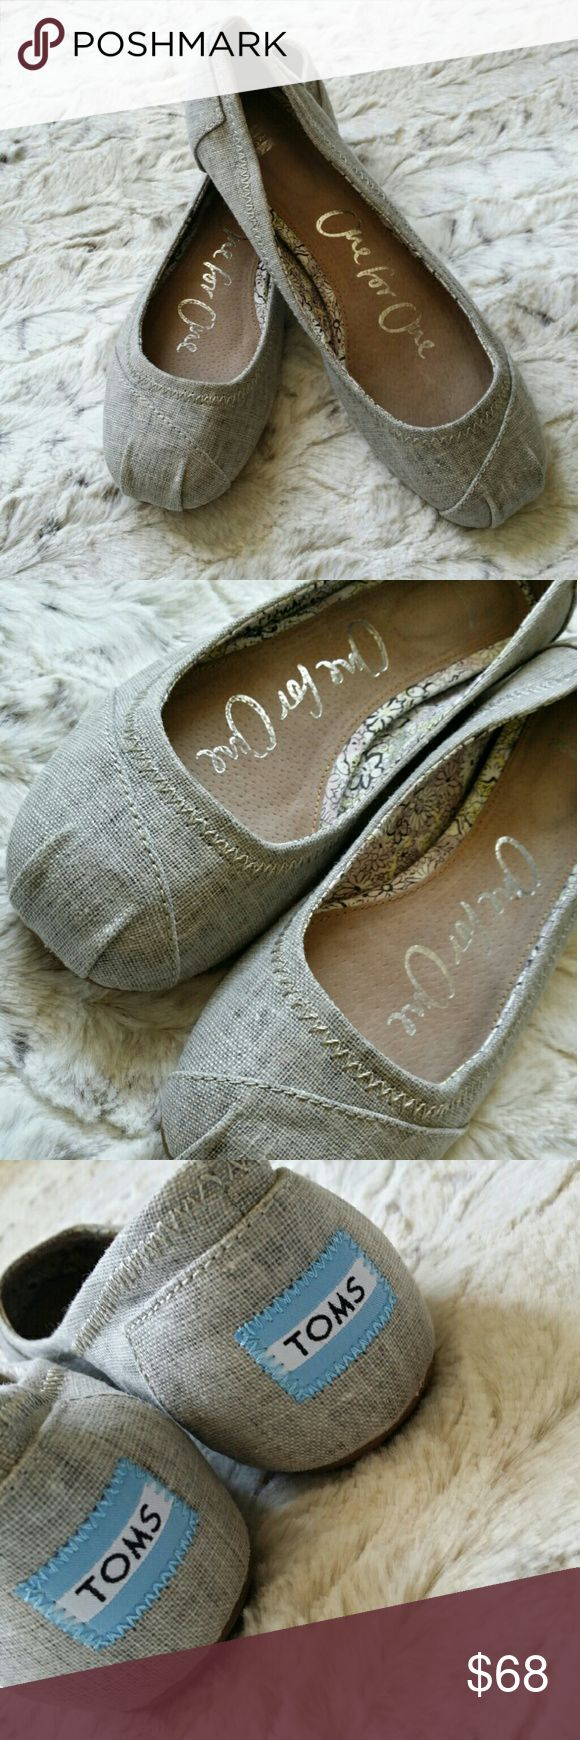 Toms Ballet Natalia Gray/Grey Linen Flats EUC Only worn inside. Great to wear any day of the week for work or play! Perfect neutral color to go with your basic skirts or Lularoe prints! Beautiful addition to any fashionistas closet! Note : Very slight wear visible on bottom of shoes as shown in photo. Also, some fading of size (w5) inside shoes-can provide photo if interested. Smoke/Pet Free Home No Trades TOMS Shoes Flats  Loafers